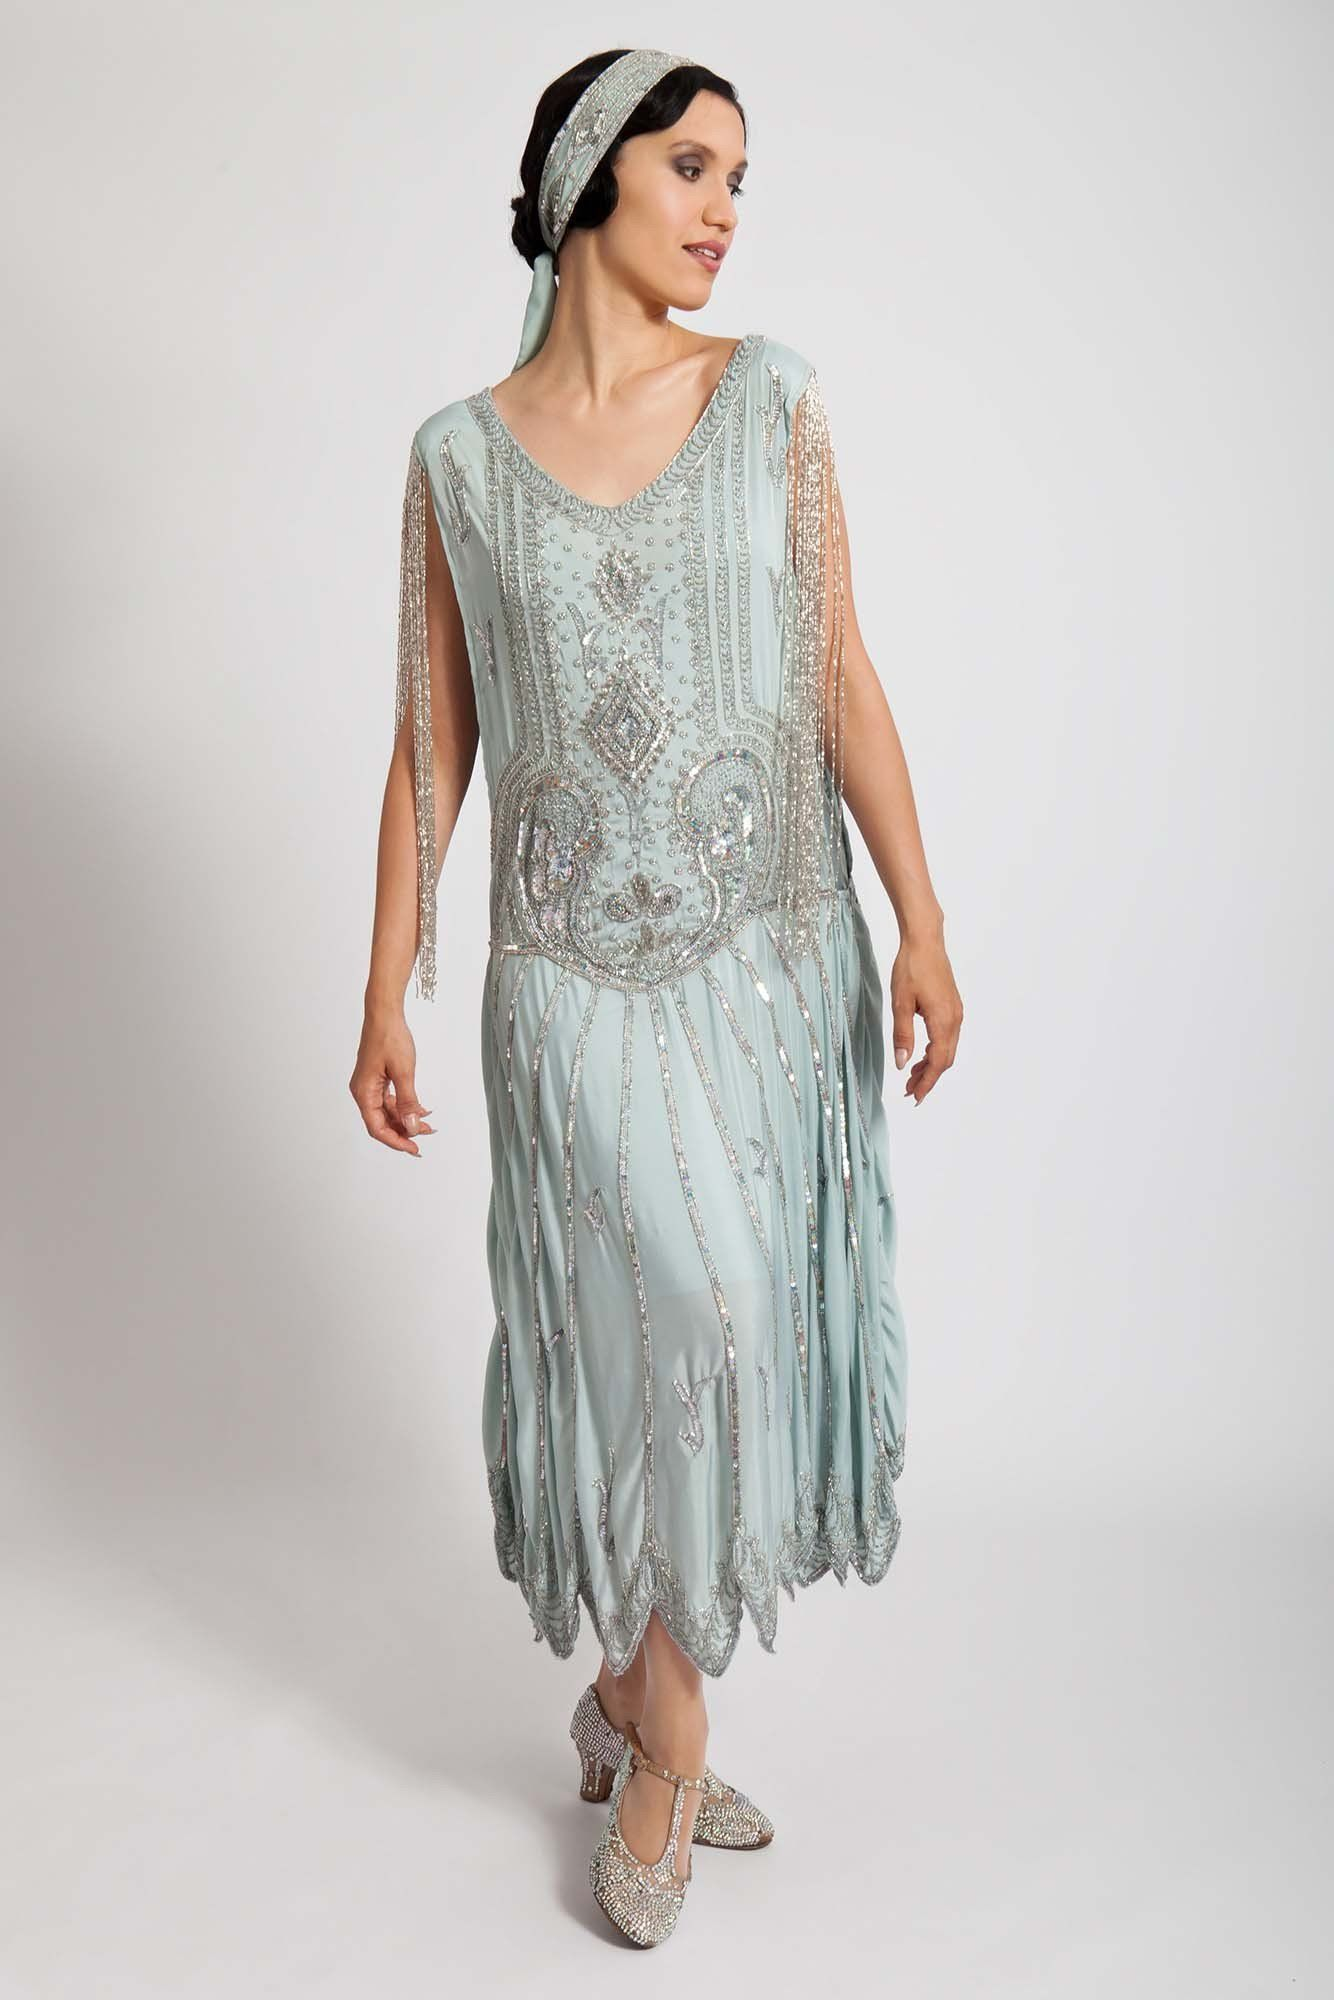 1920s Evening Dresses & Formal Gowns 1920s party dresses